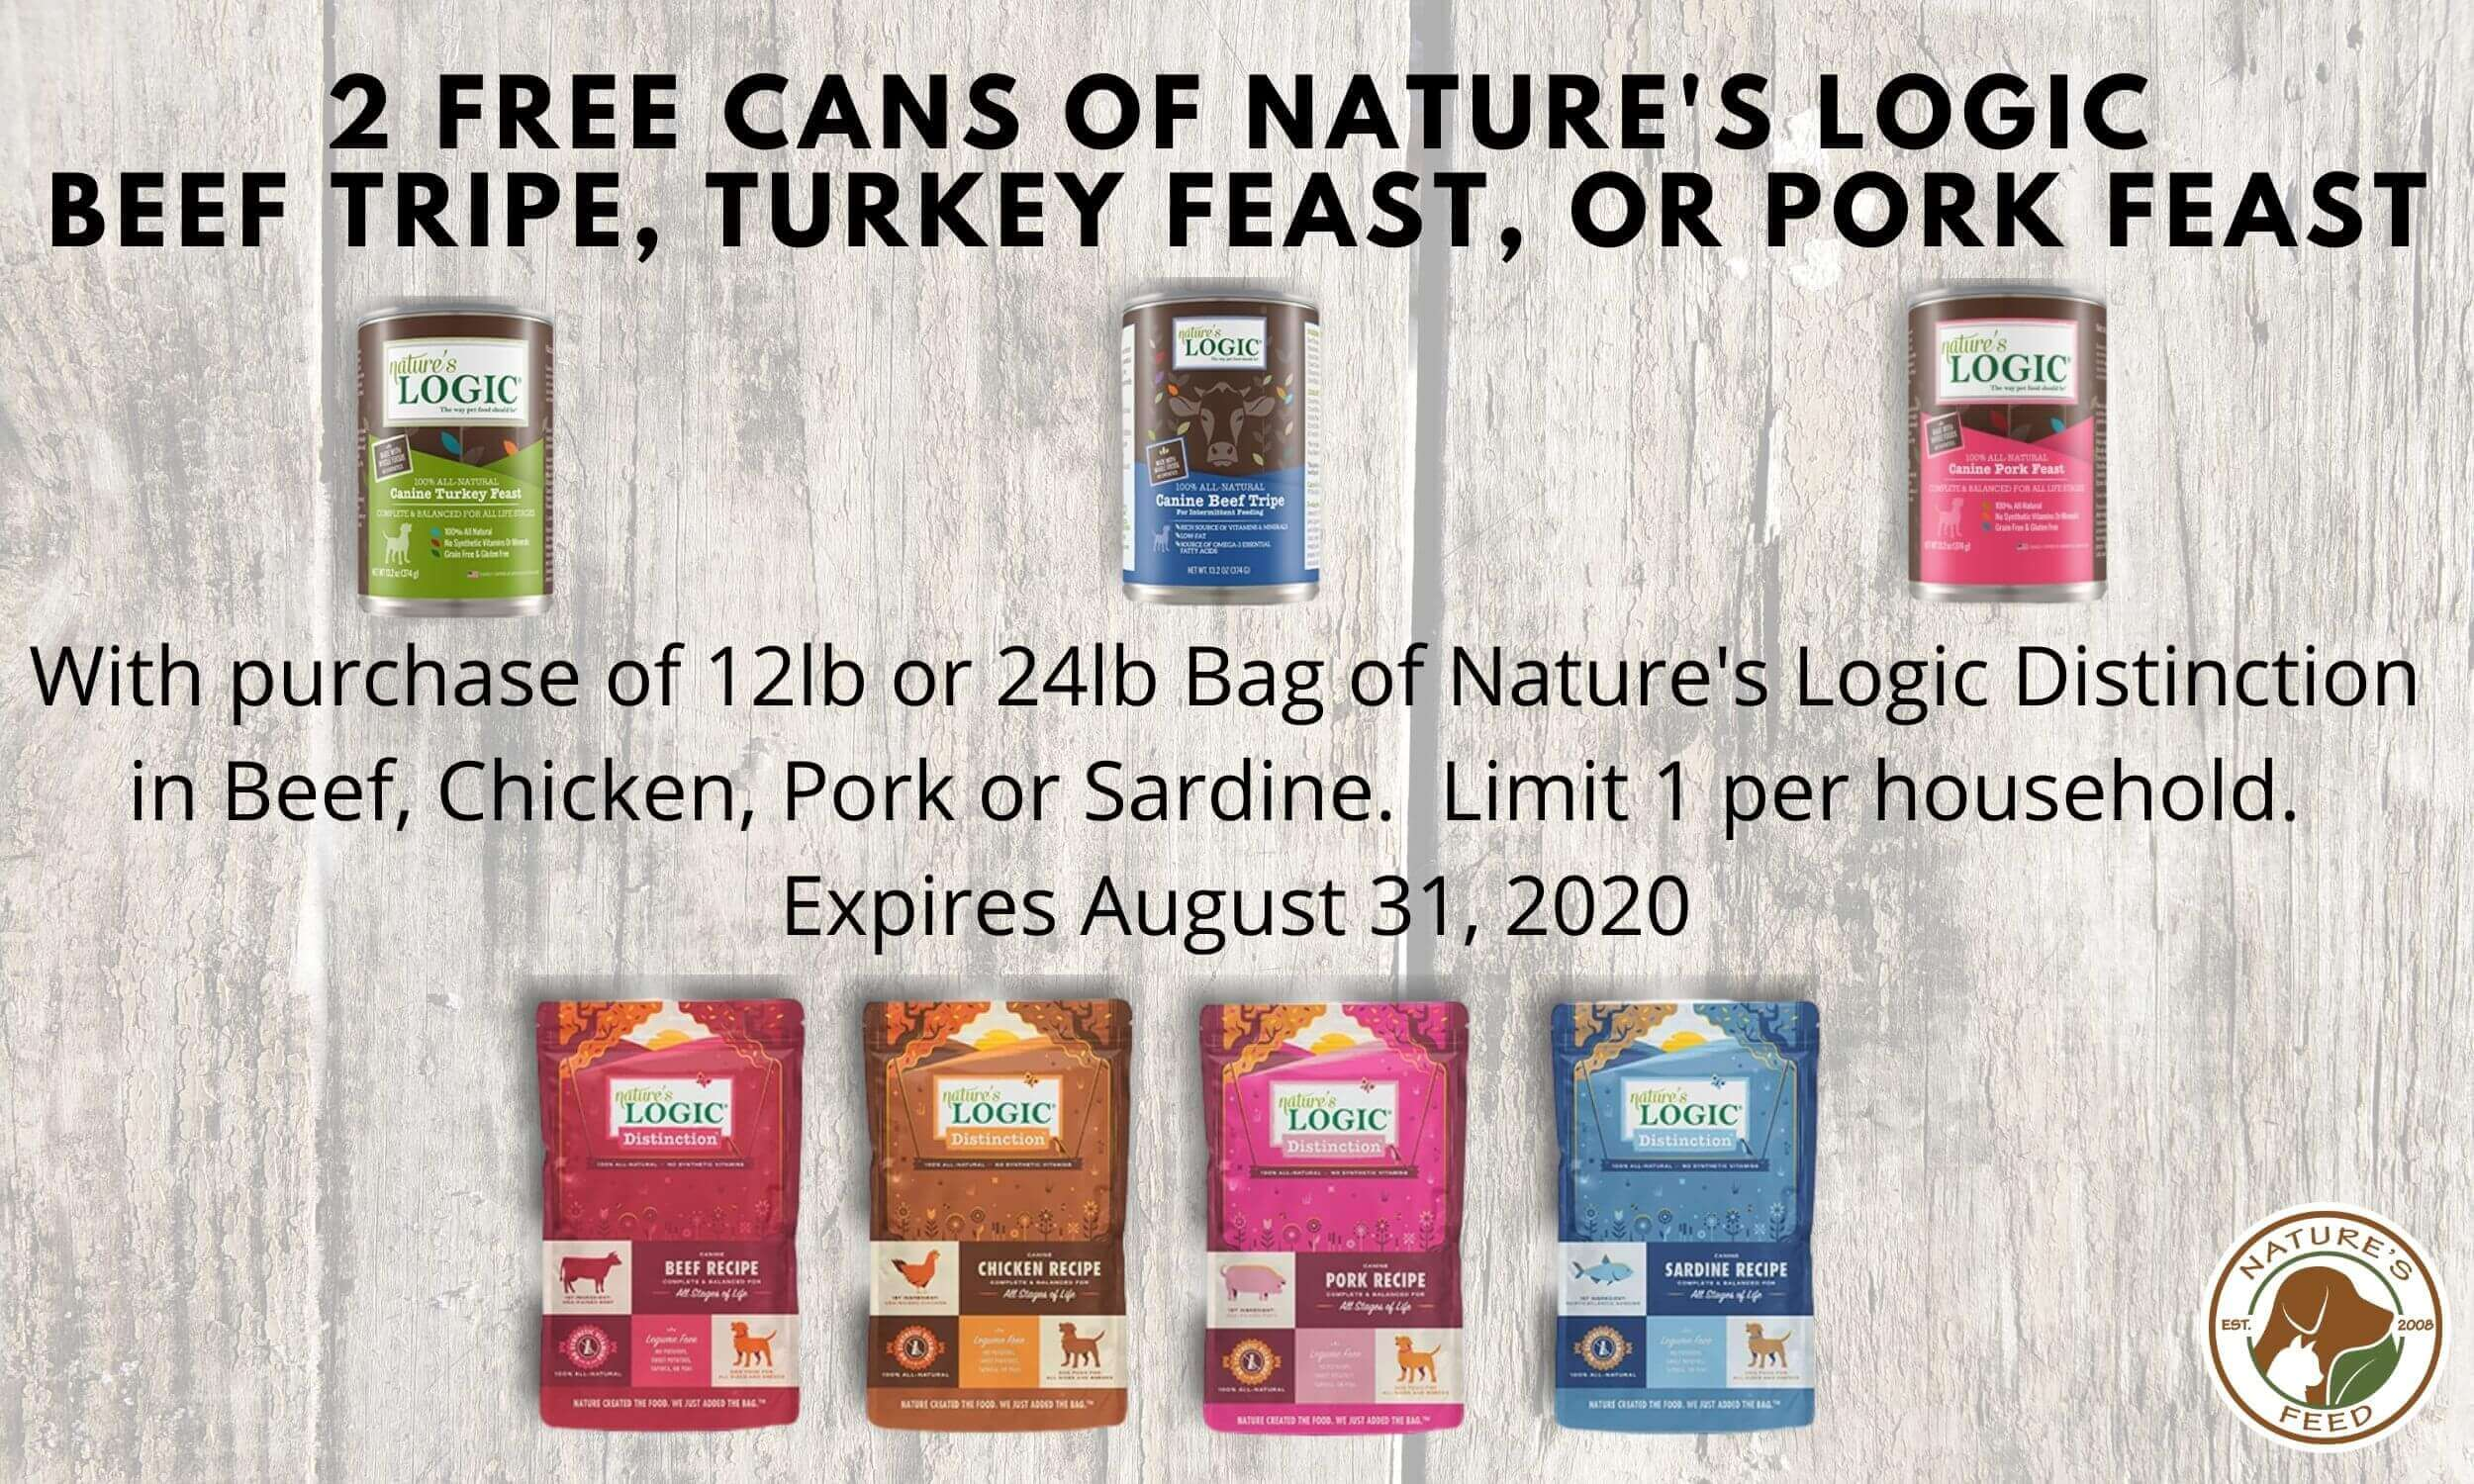 2 FREE Nature's Logic Dog Food Cans With Purchase - Spring Grove, Illinois